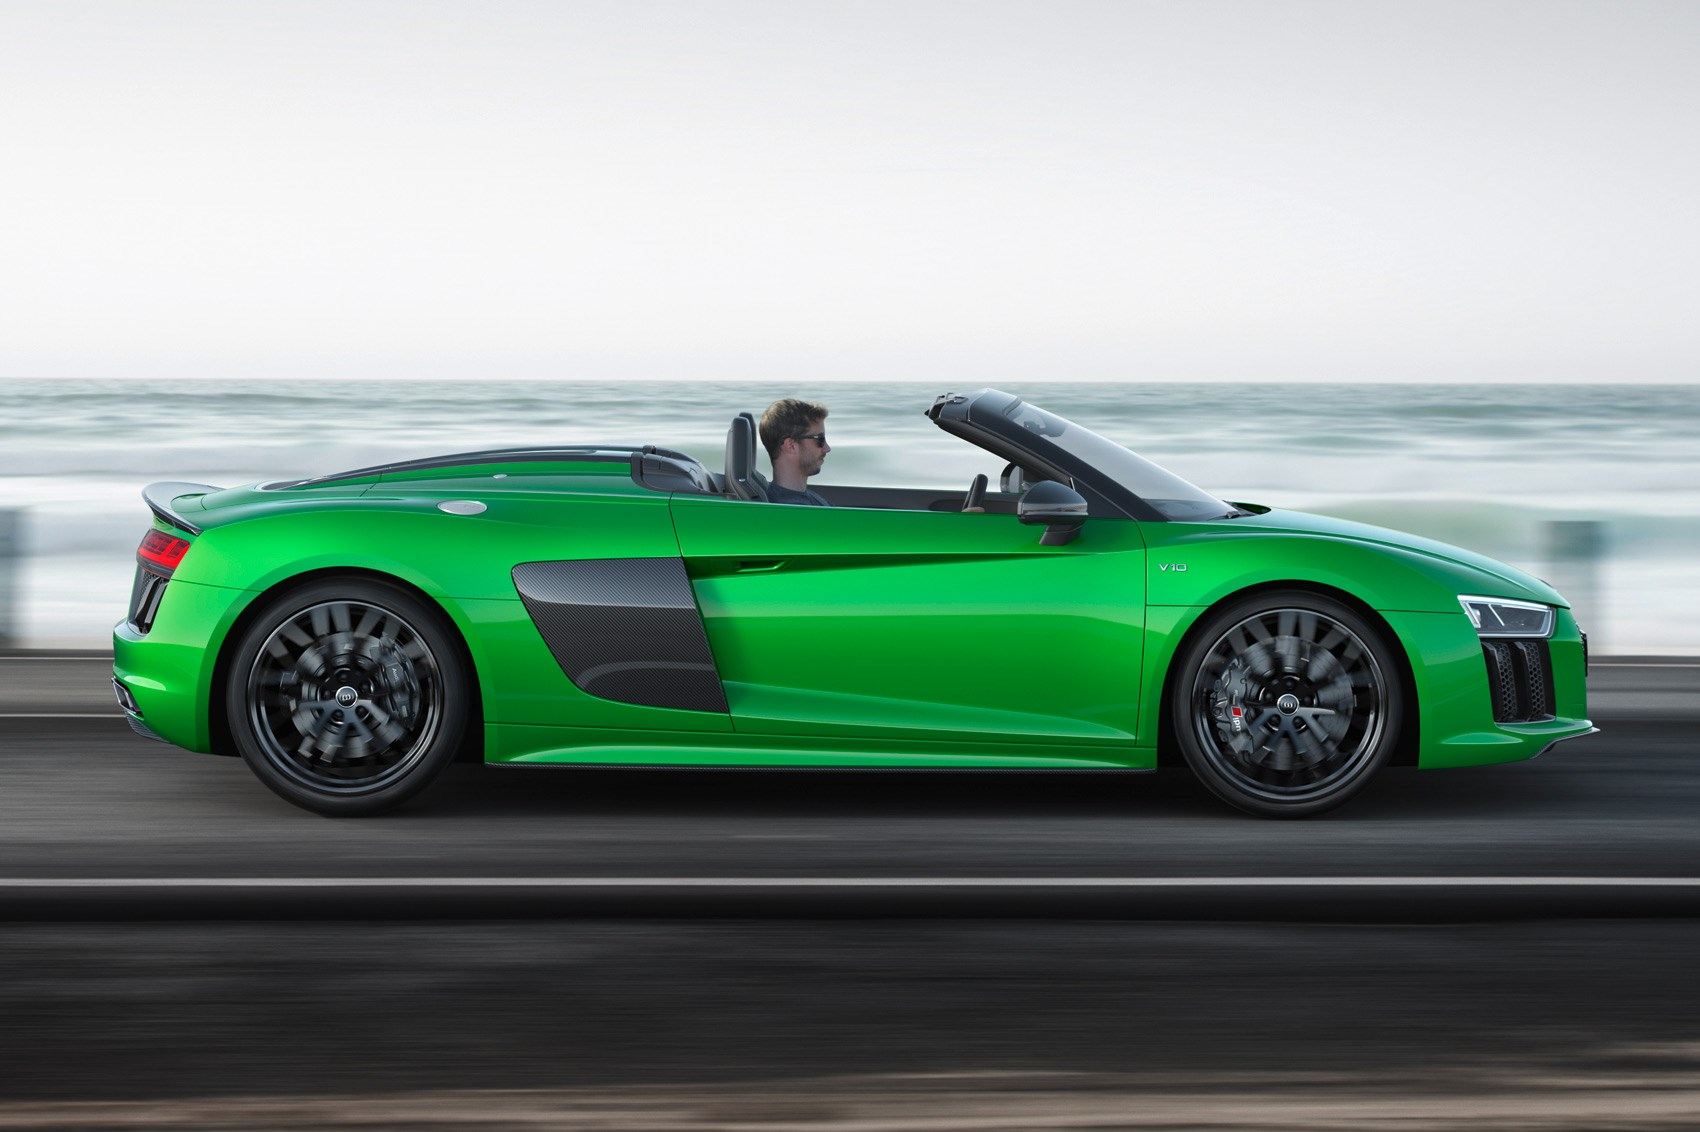 The Hulk Goes Topless New Audi R8 Spyder V10 Plus